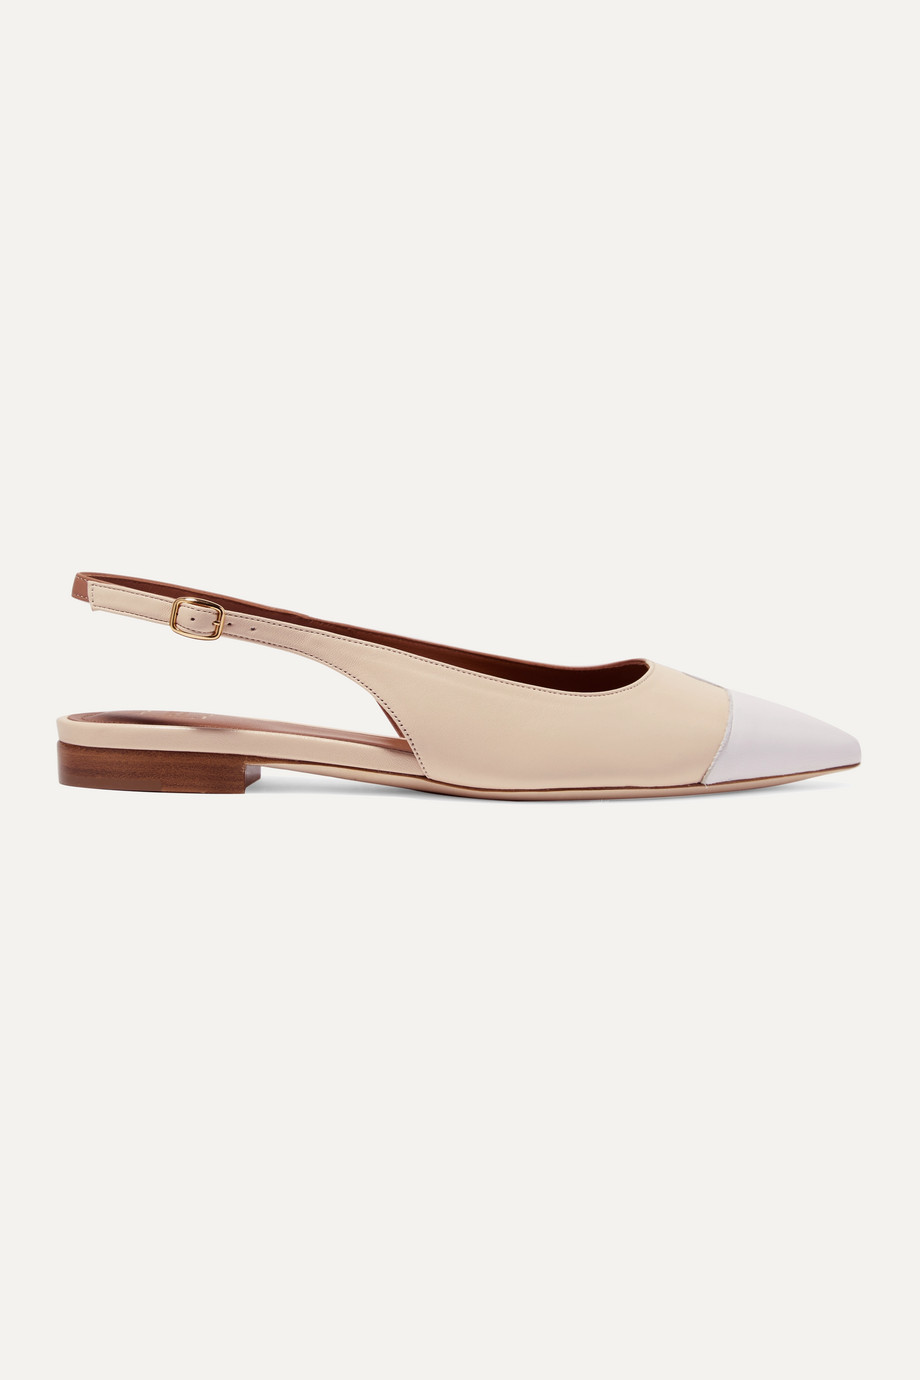 Malone Souliers Bianca color-block leather slingback point-toe flats